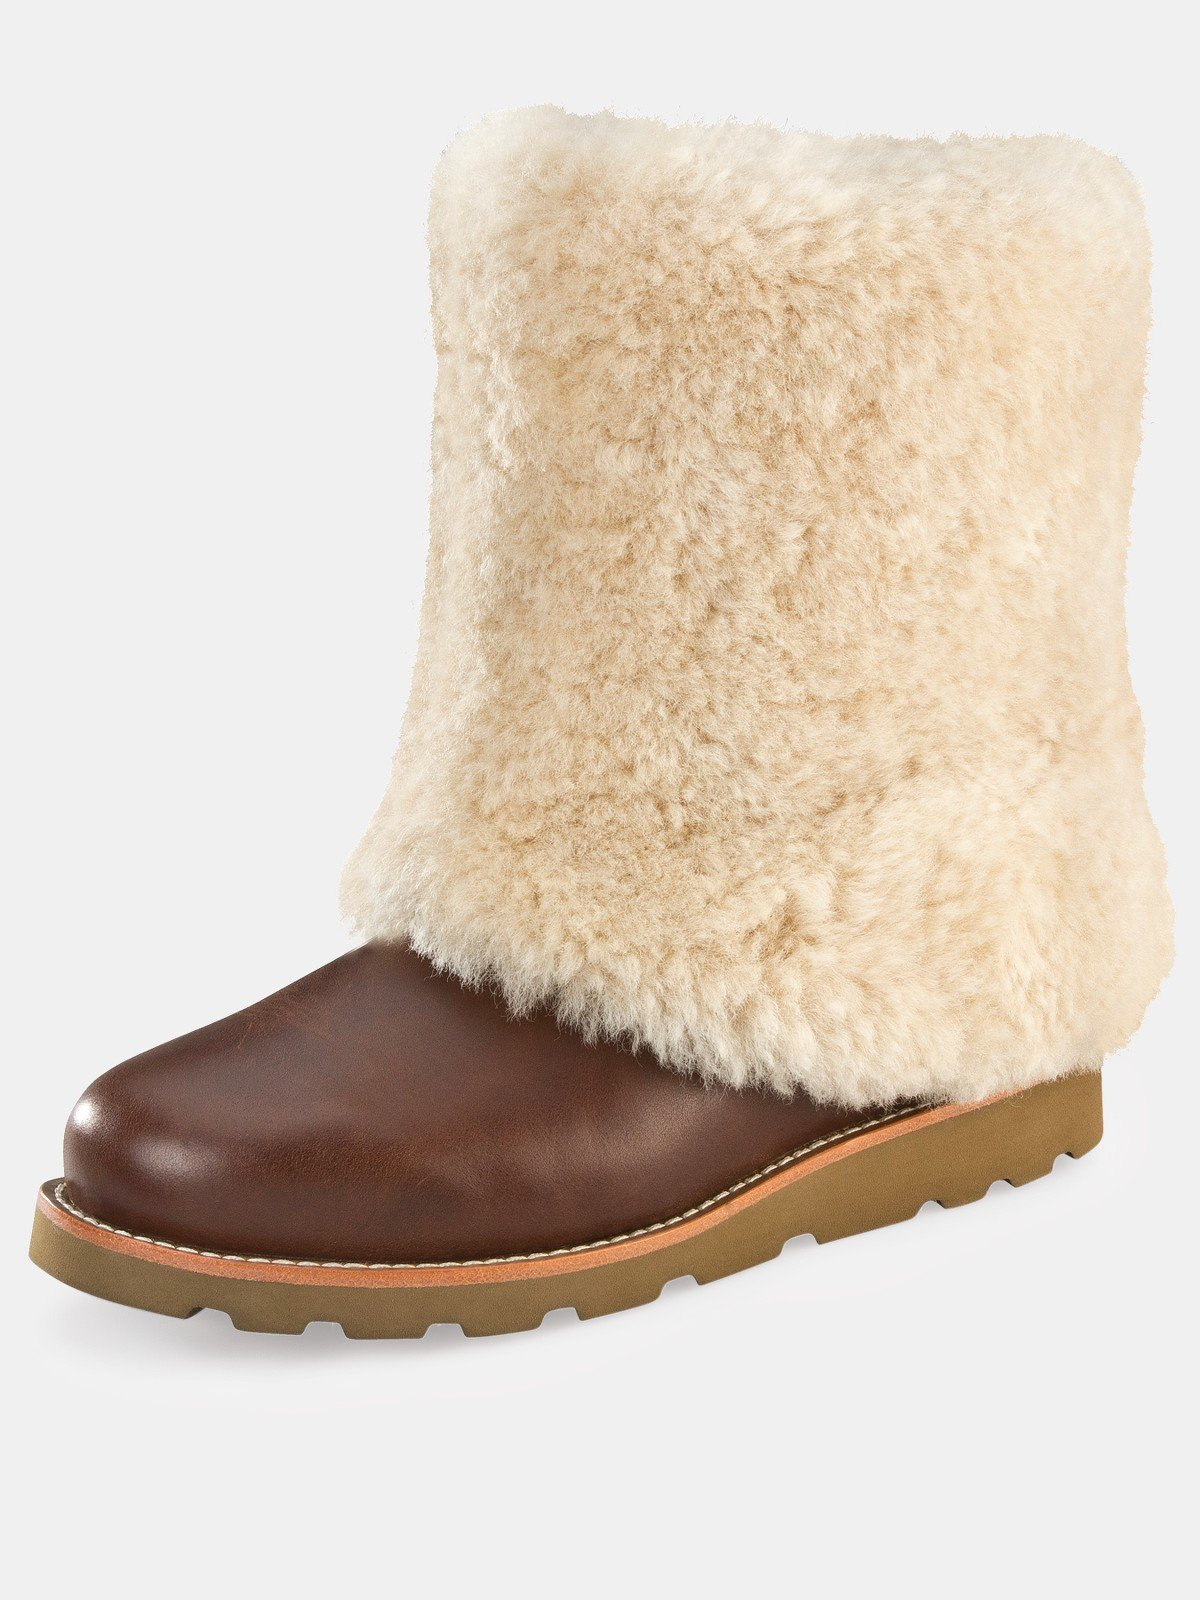 3e83ff60cc Ugg Australian Sheepskin Products